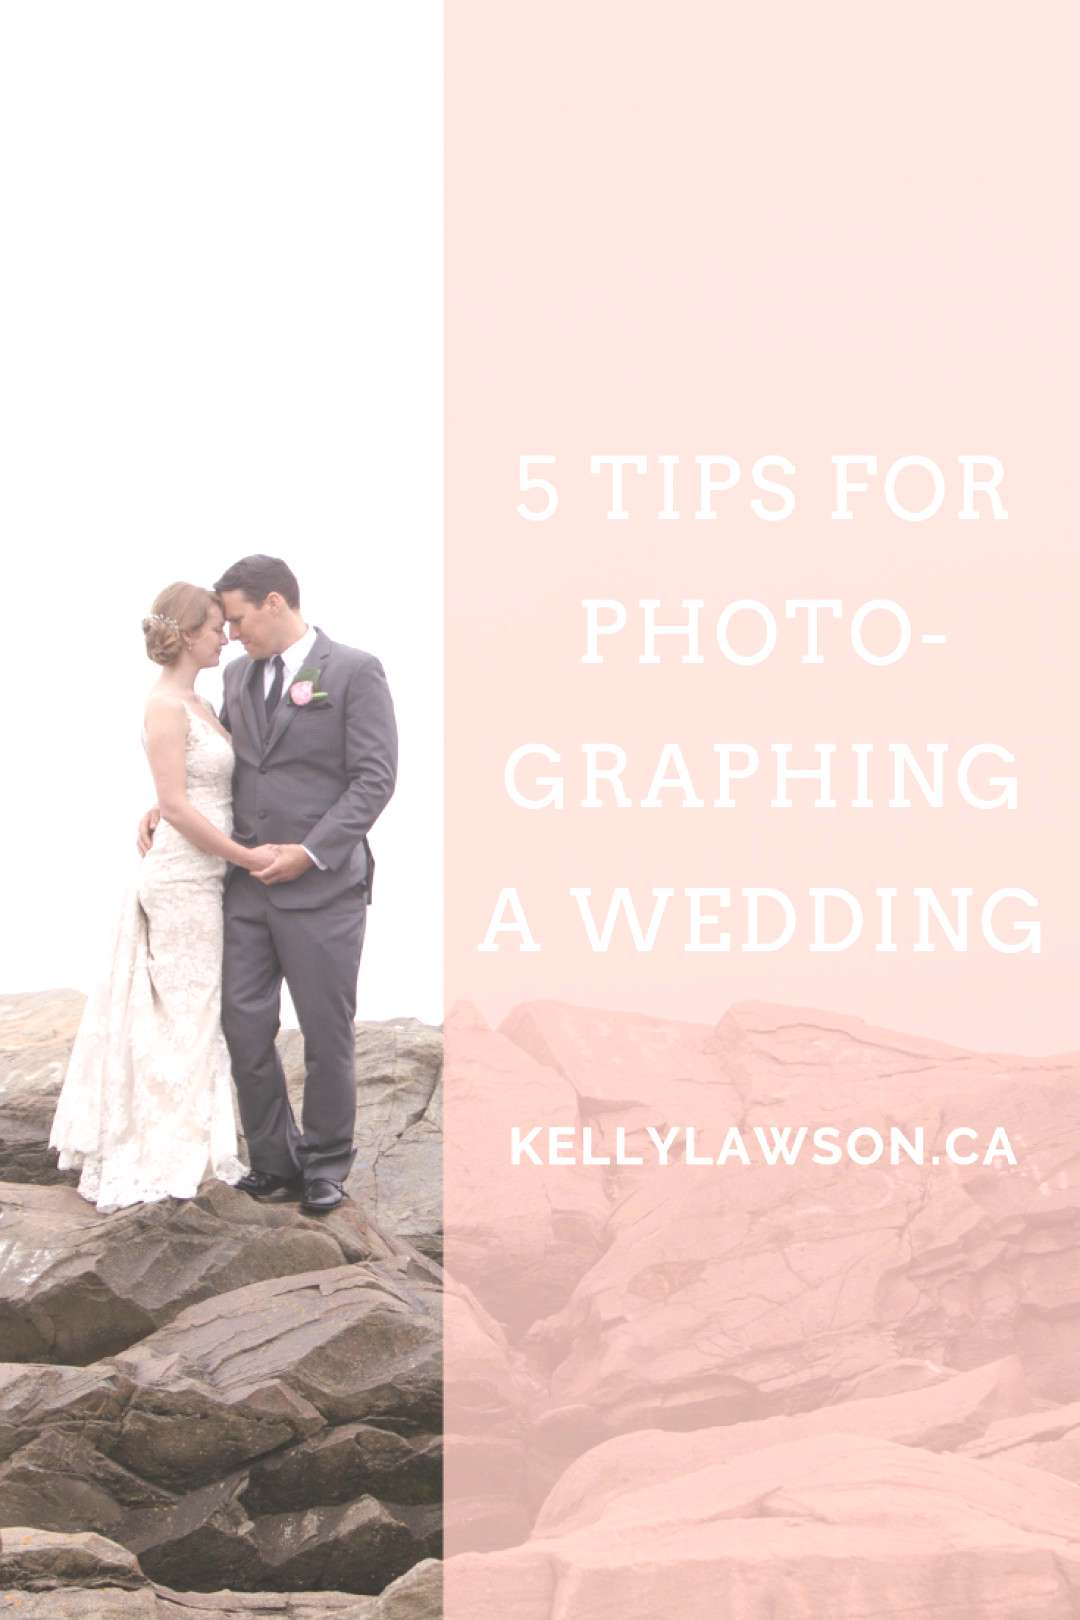 Wedding Day Tips for Photographers + A Gift - Kelly Lawson#day